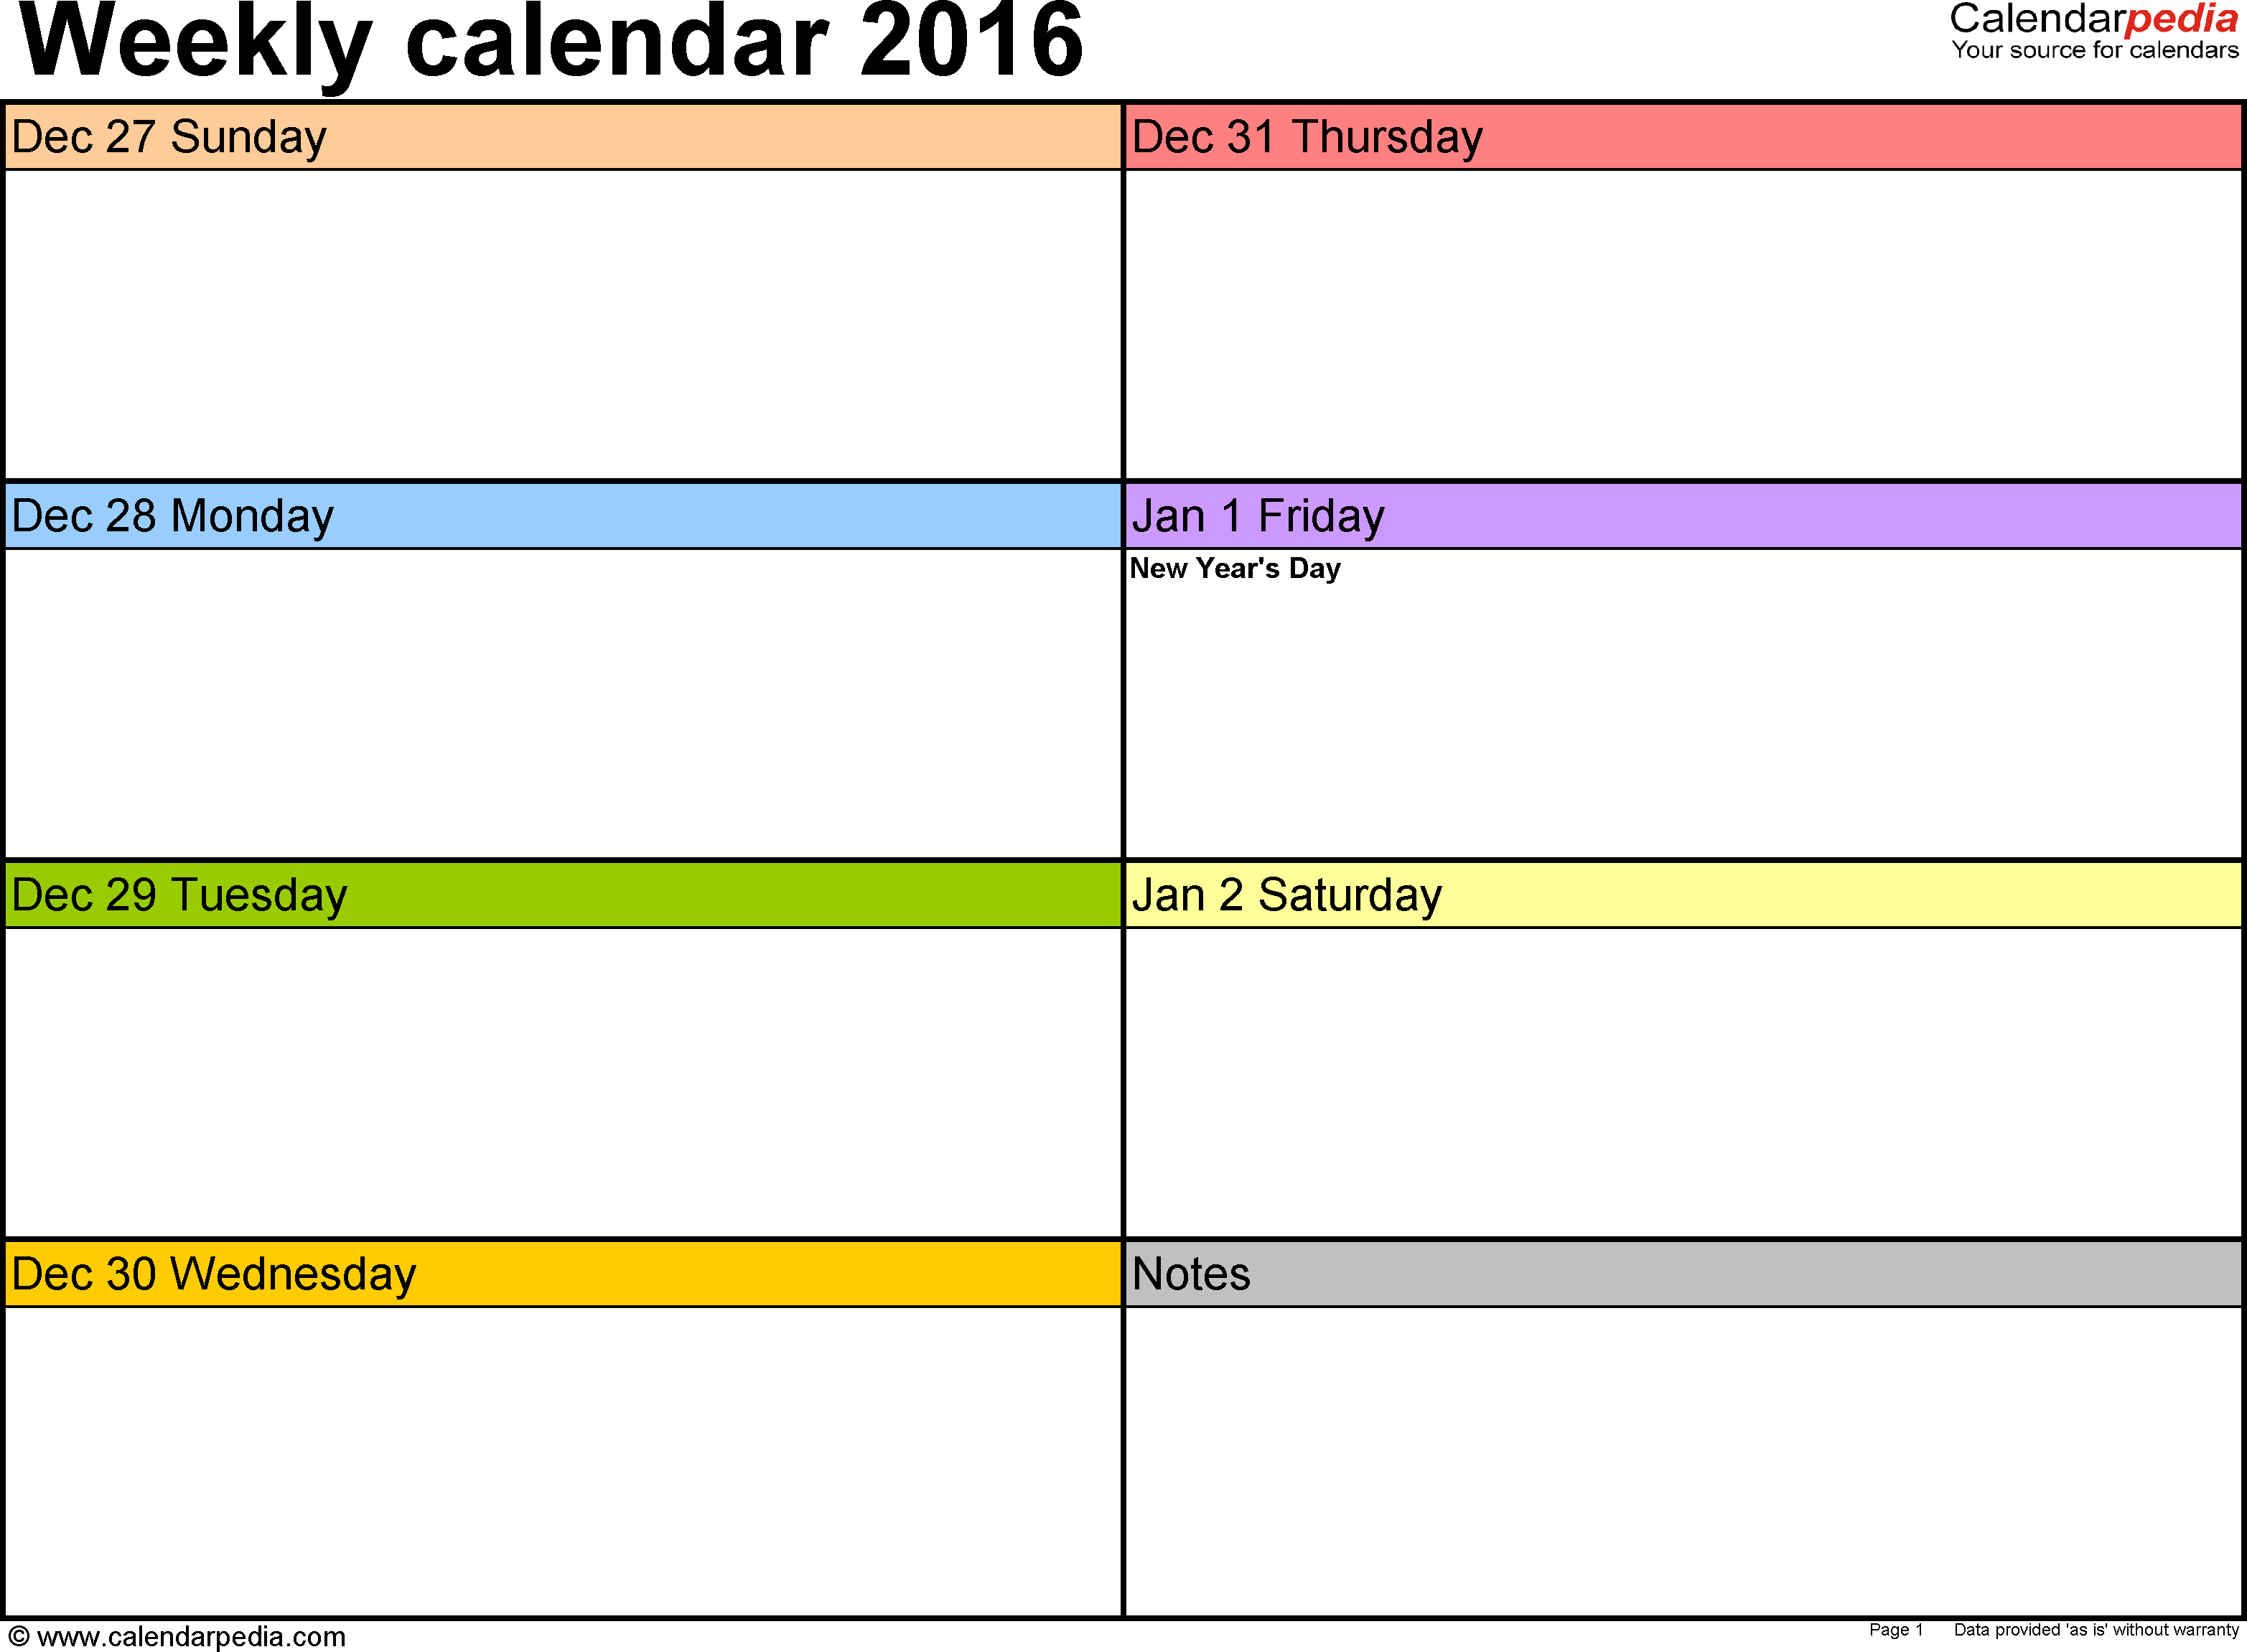 Weekly Calendar 2016: Template For Word Version 2, Landscape